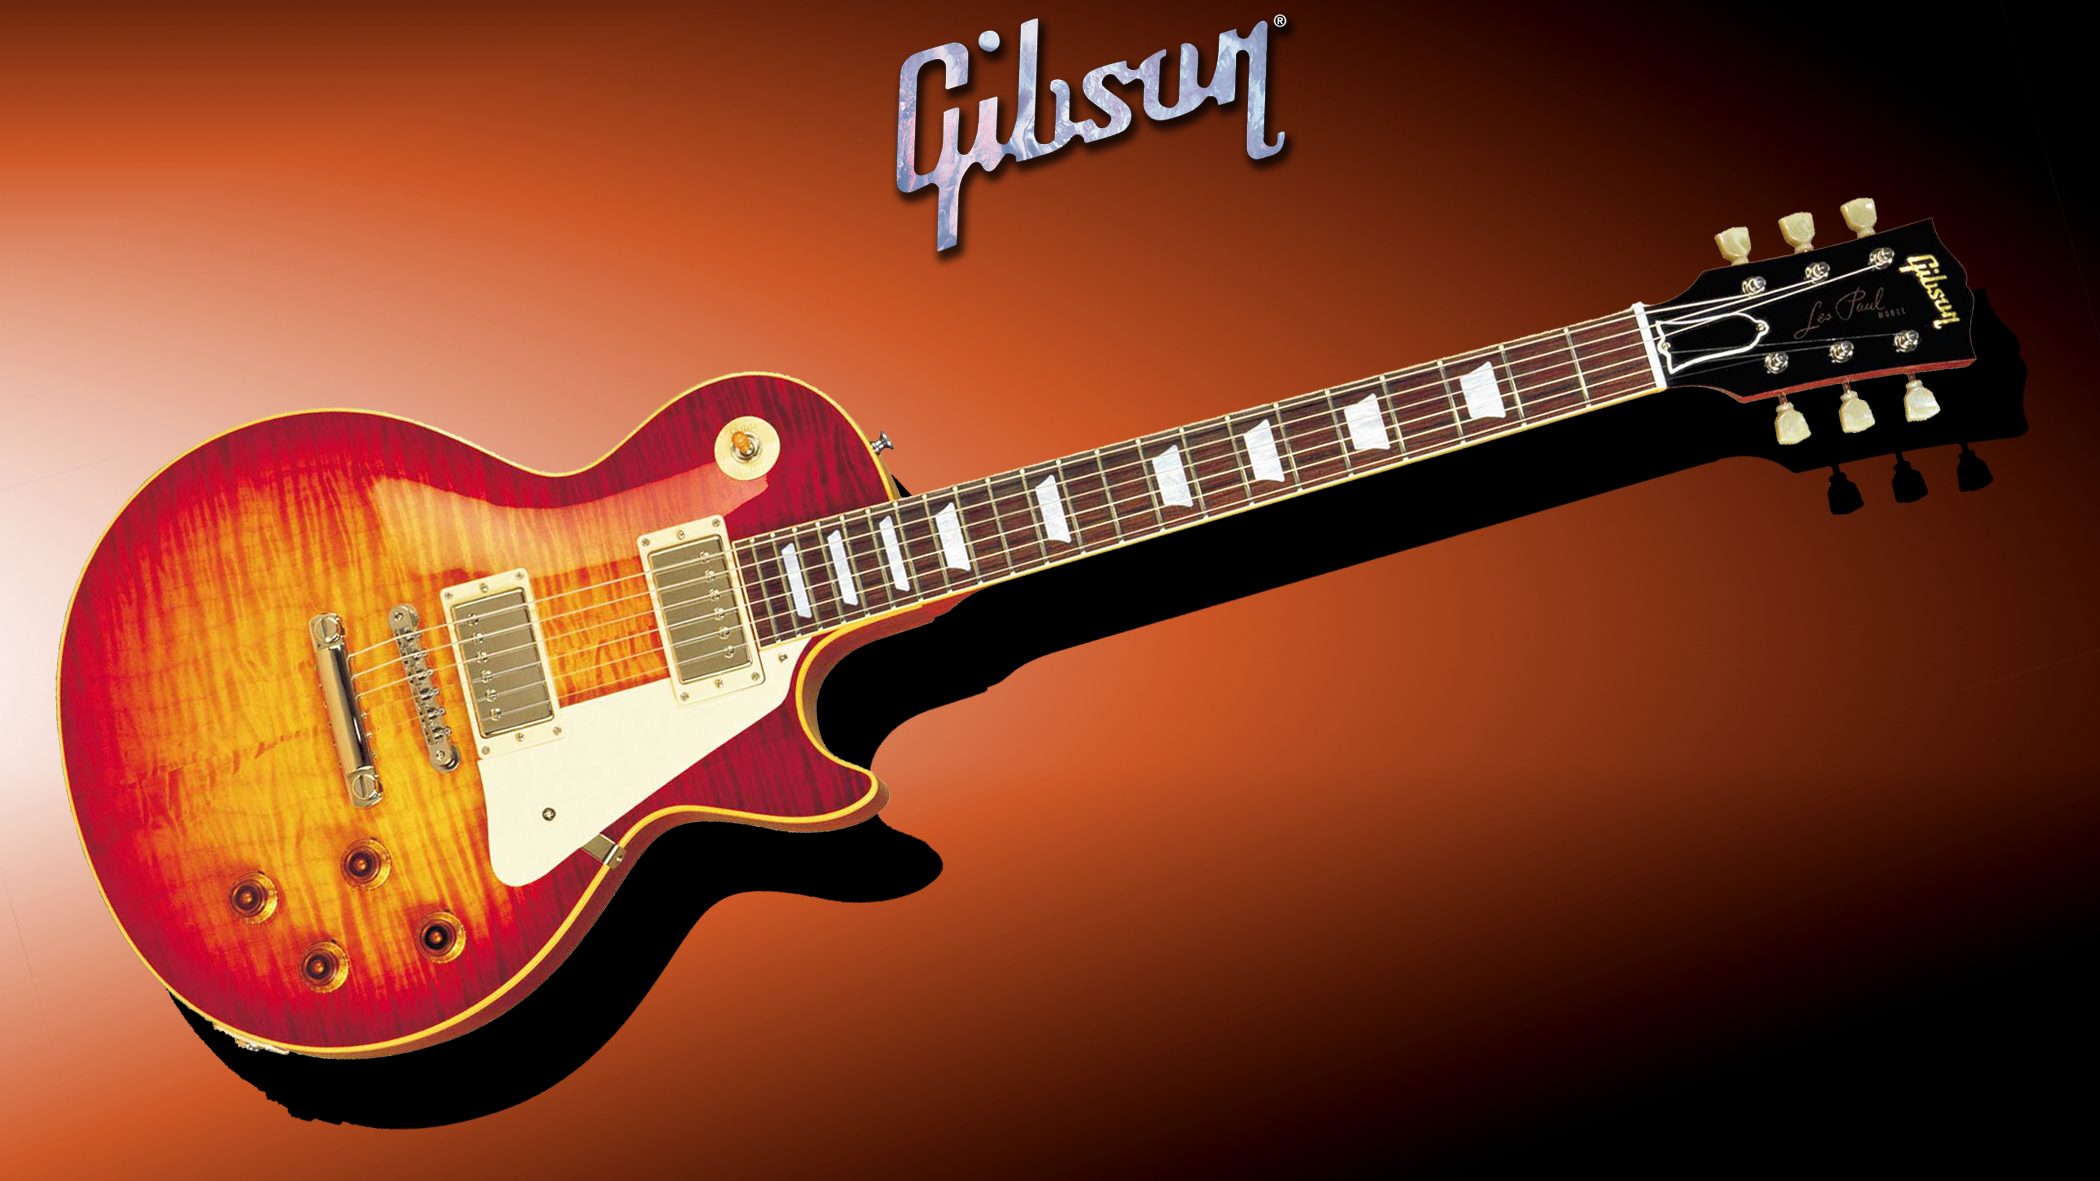 guitar wallpaper les paul - photo #25